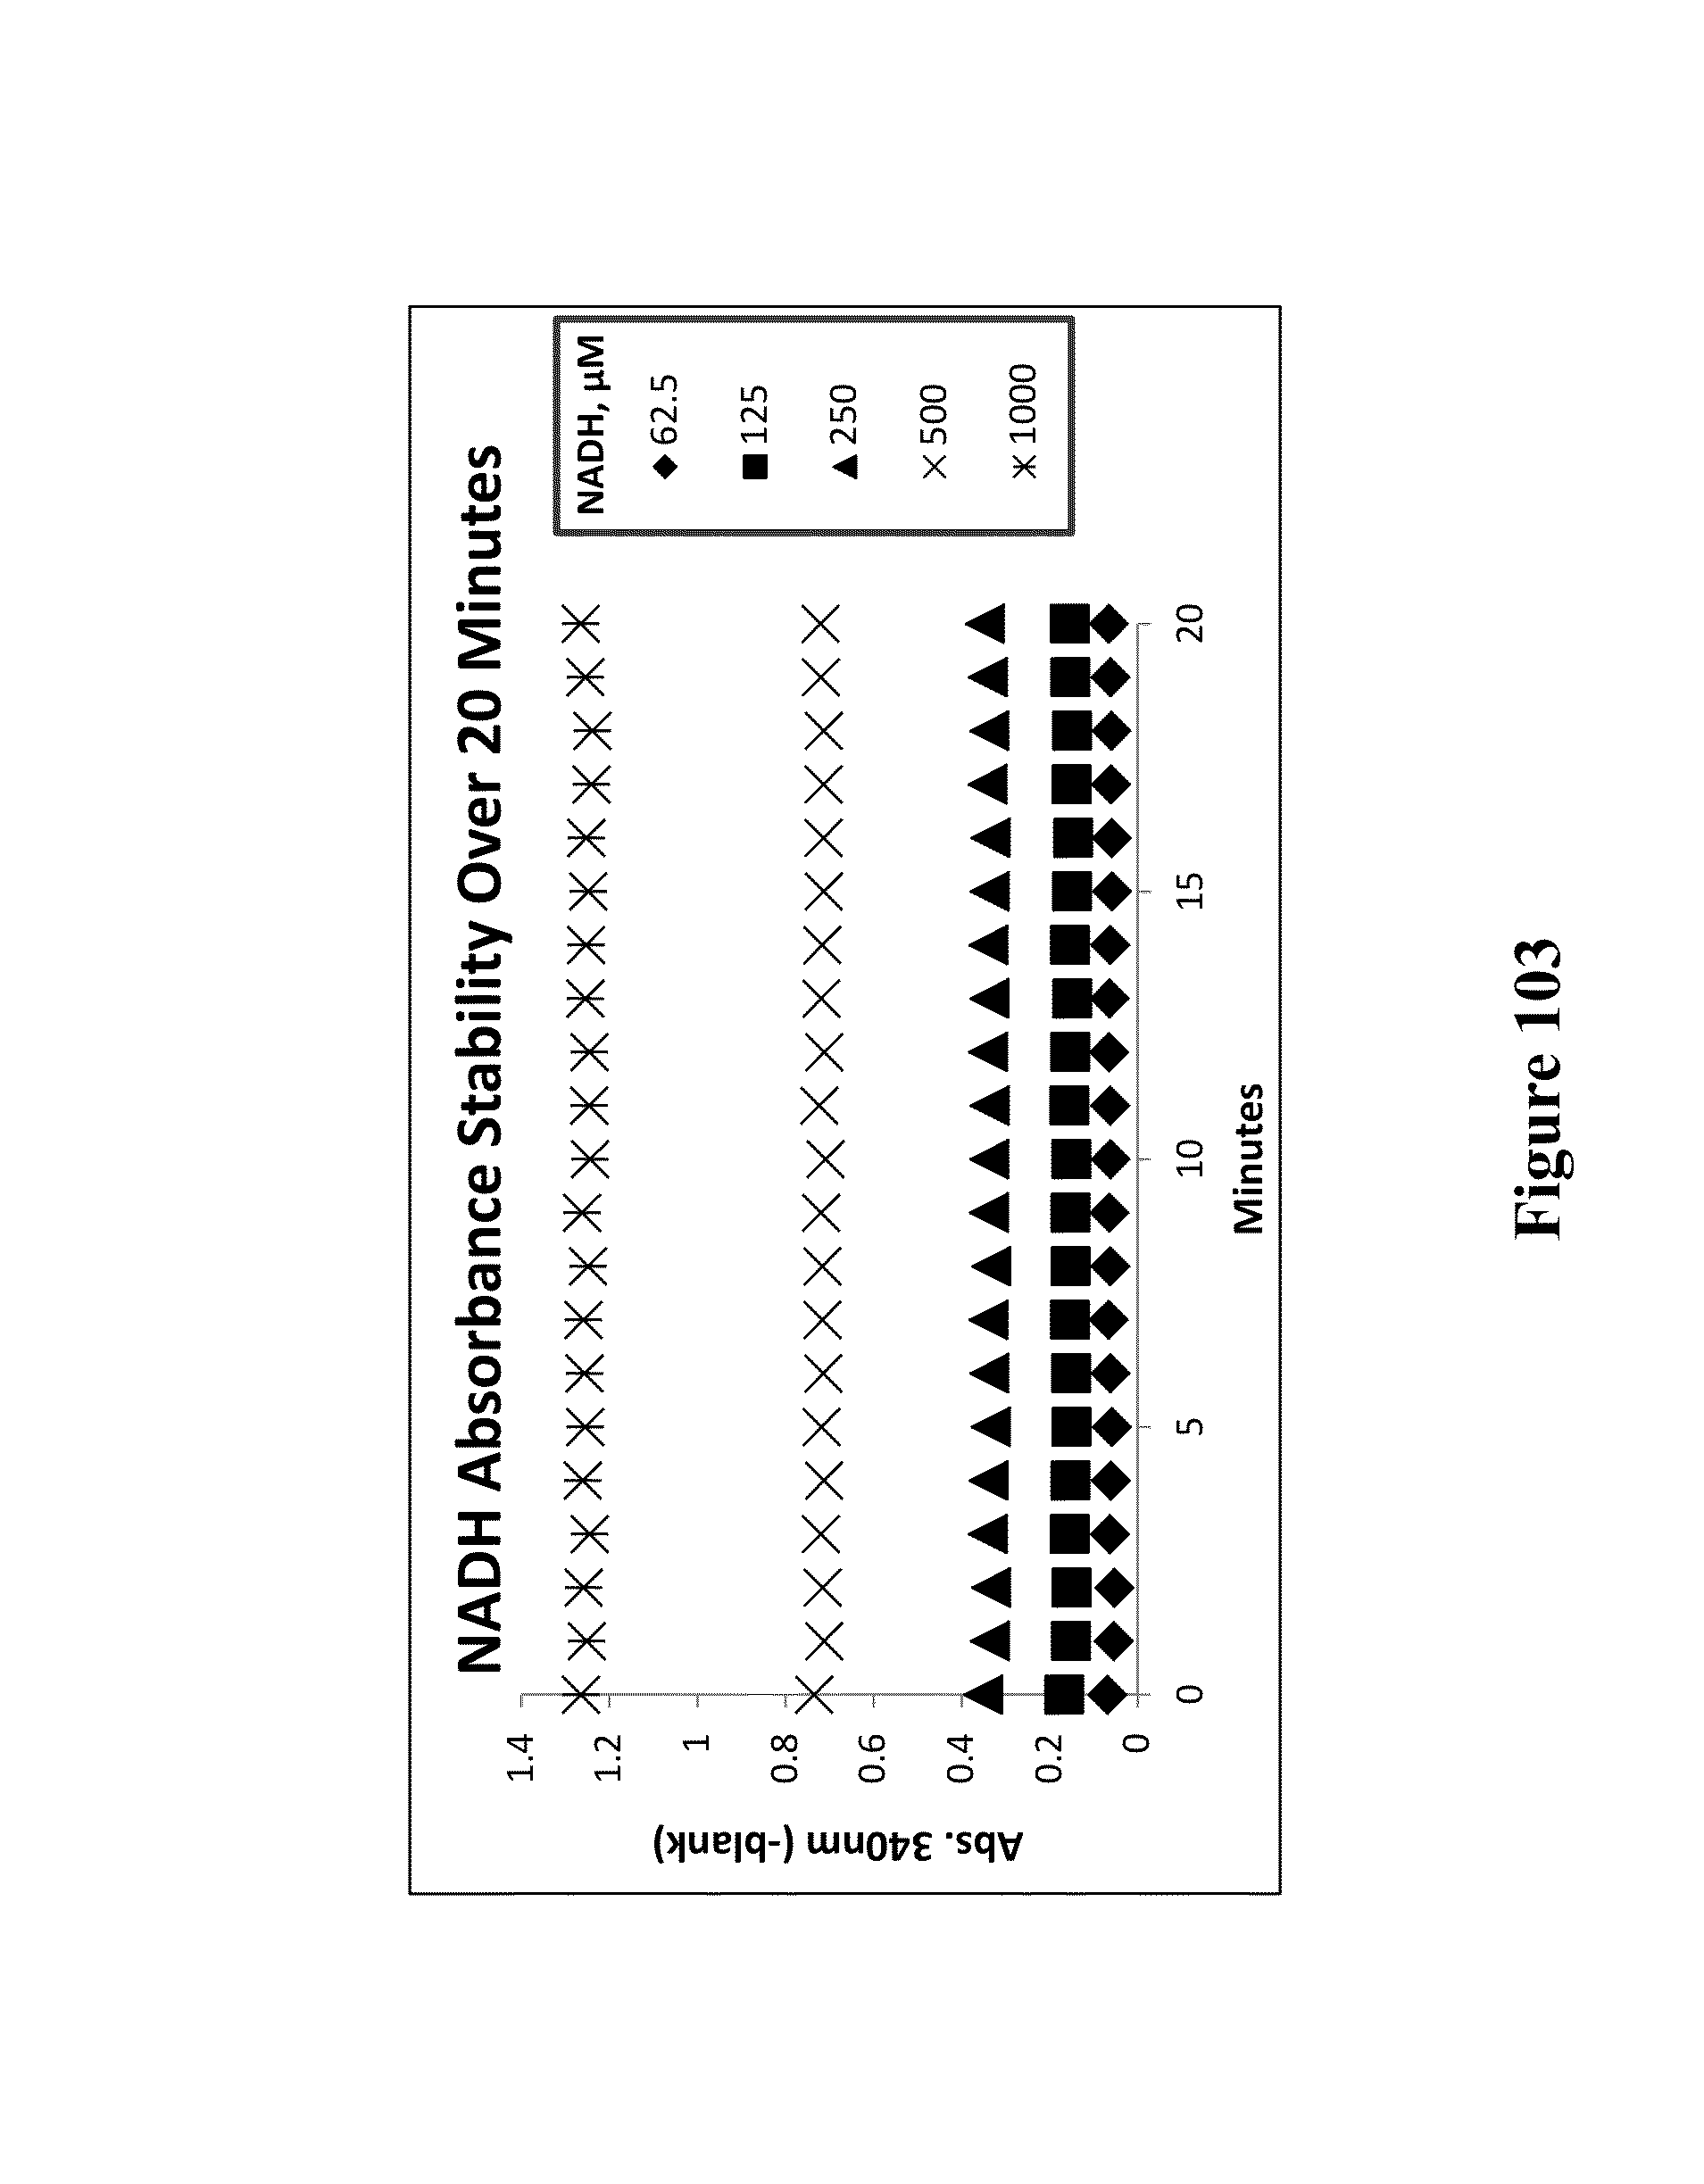 Patent Us 9250229 B2 The Zinc Carbon Dry Cell Or Battery Shown In A Cutaway Diagram Is Images